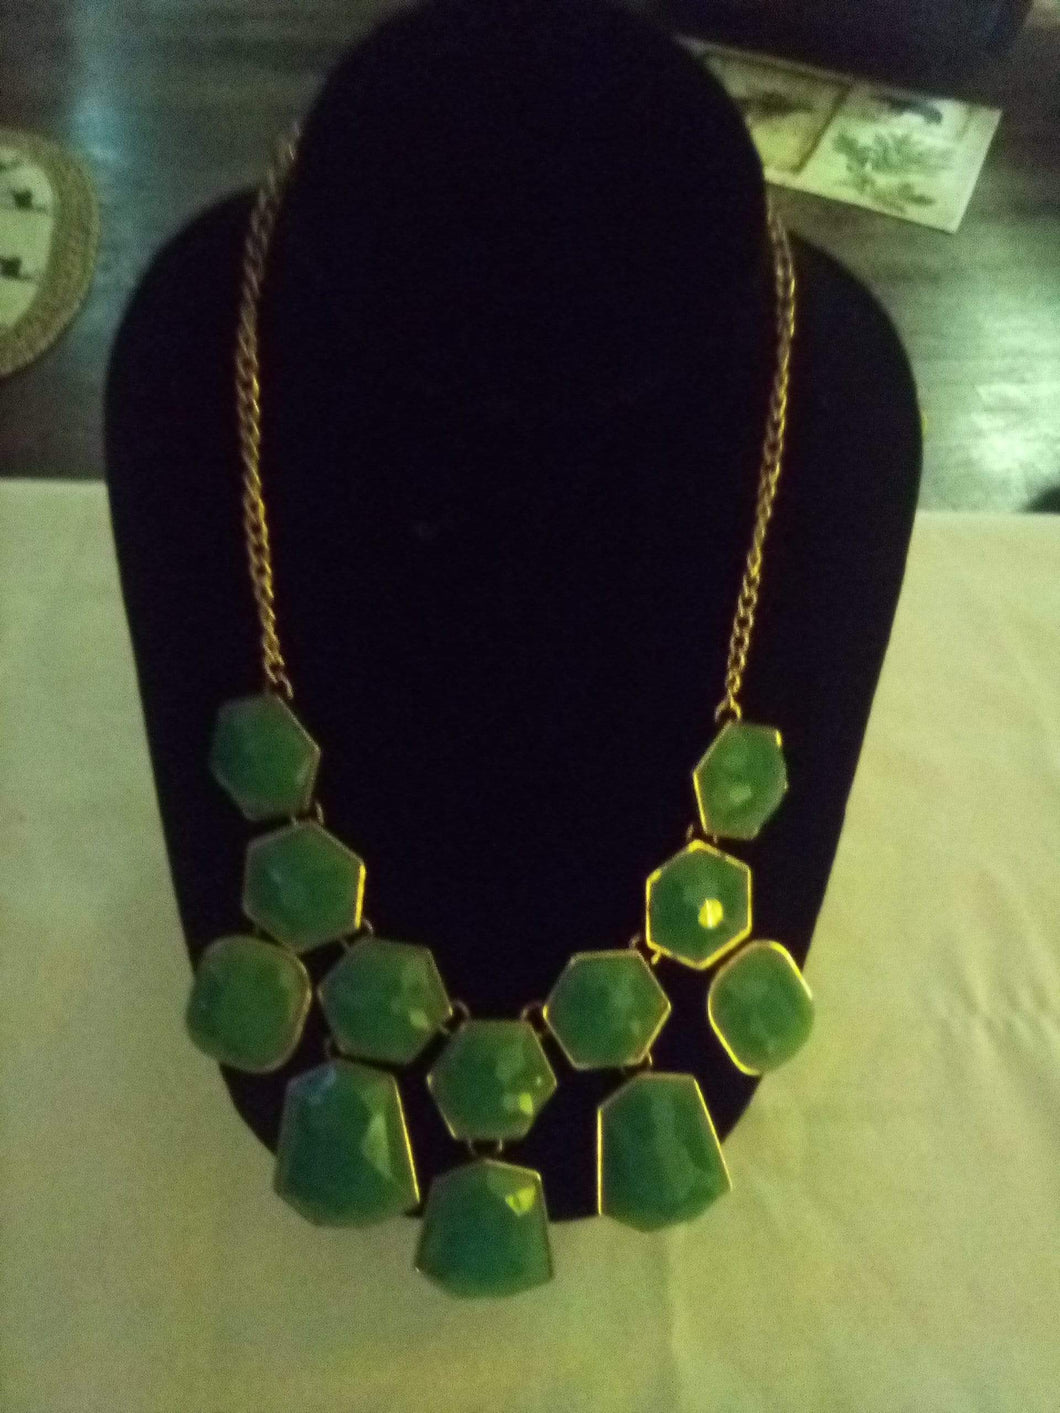 Elegant turquoise colored necklace - B&P'sringsnthings